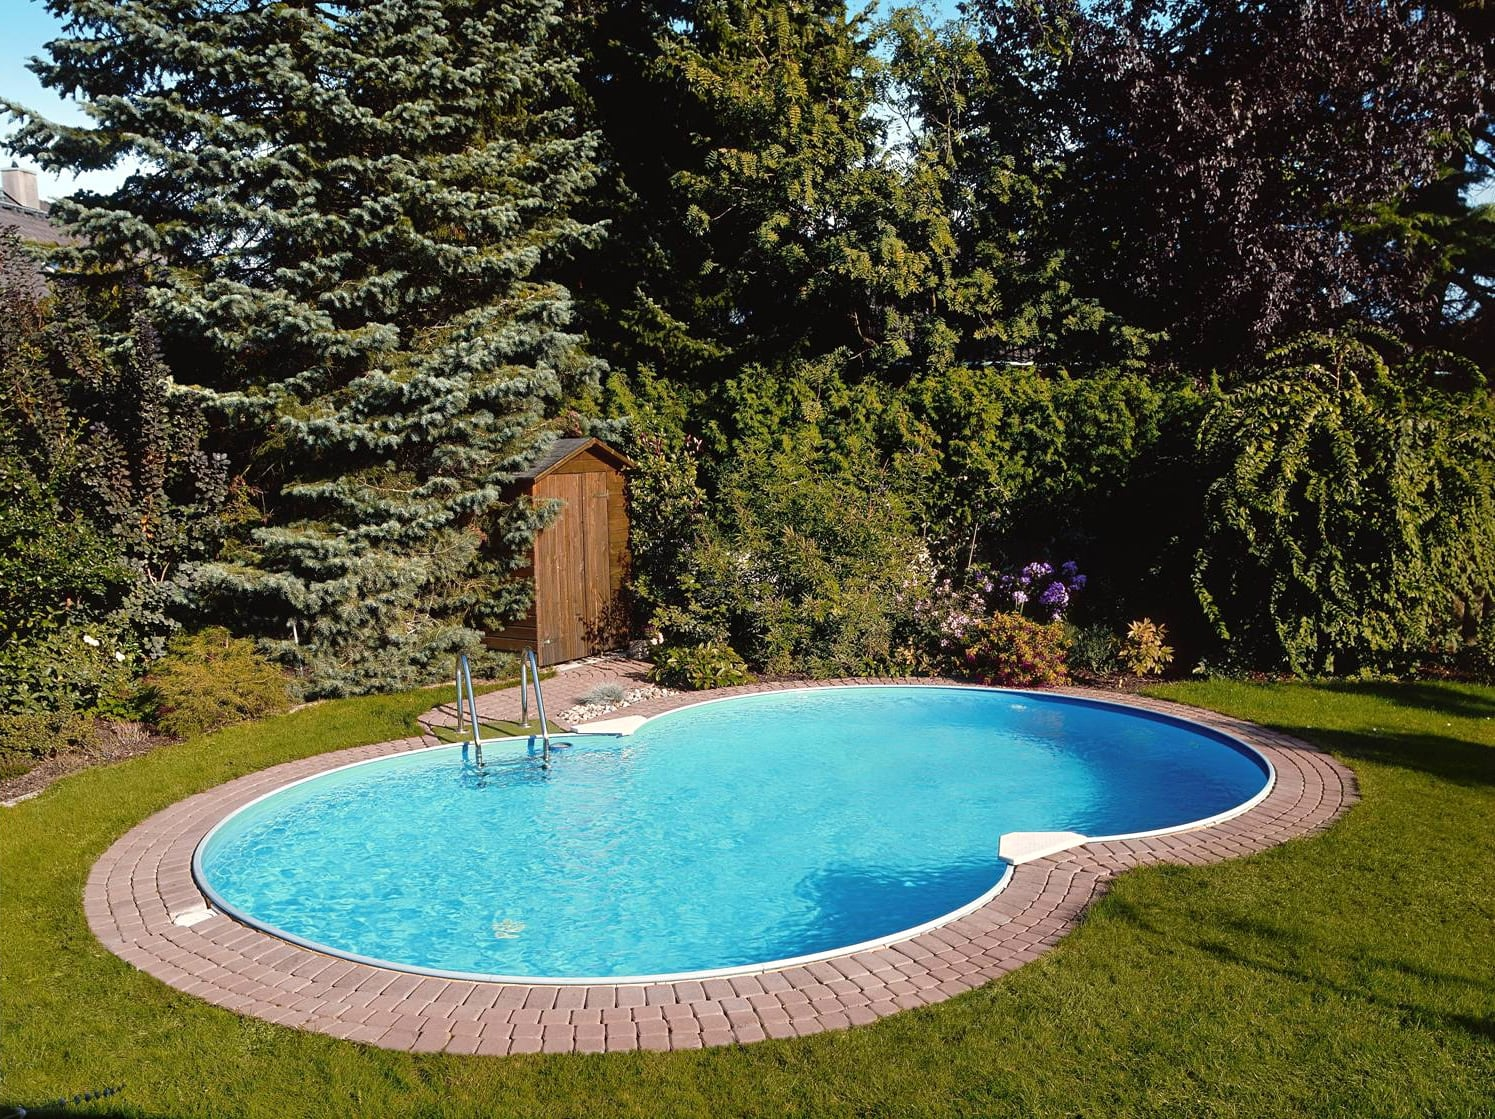 Piscineitalia kit piscina interrata in acciaio skyblue for Piscine or